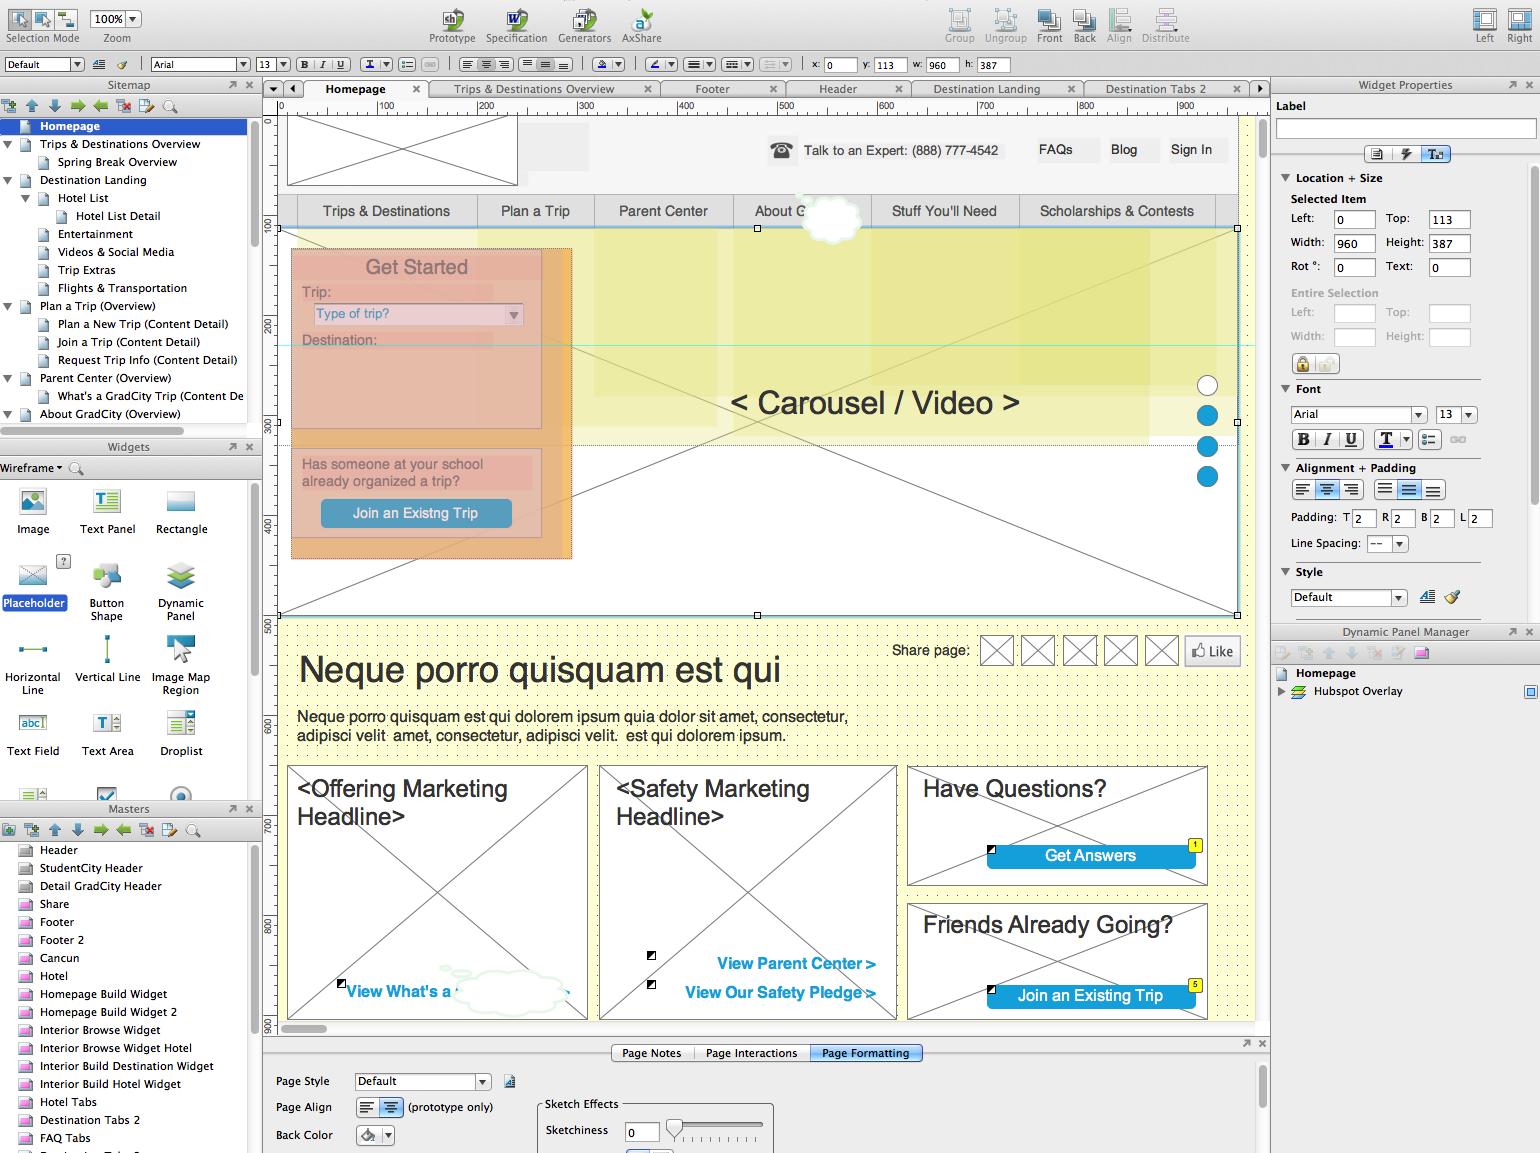 Wireframes: I create my wireframes using Axure.  I find that its prototyping ability allows me to create a workable version I can show to clients and test with customers in the same amount of time it used to take me to create flat wireframes.  The Axure interface is pictured above.